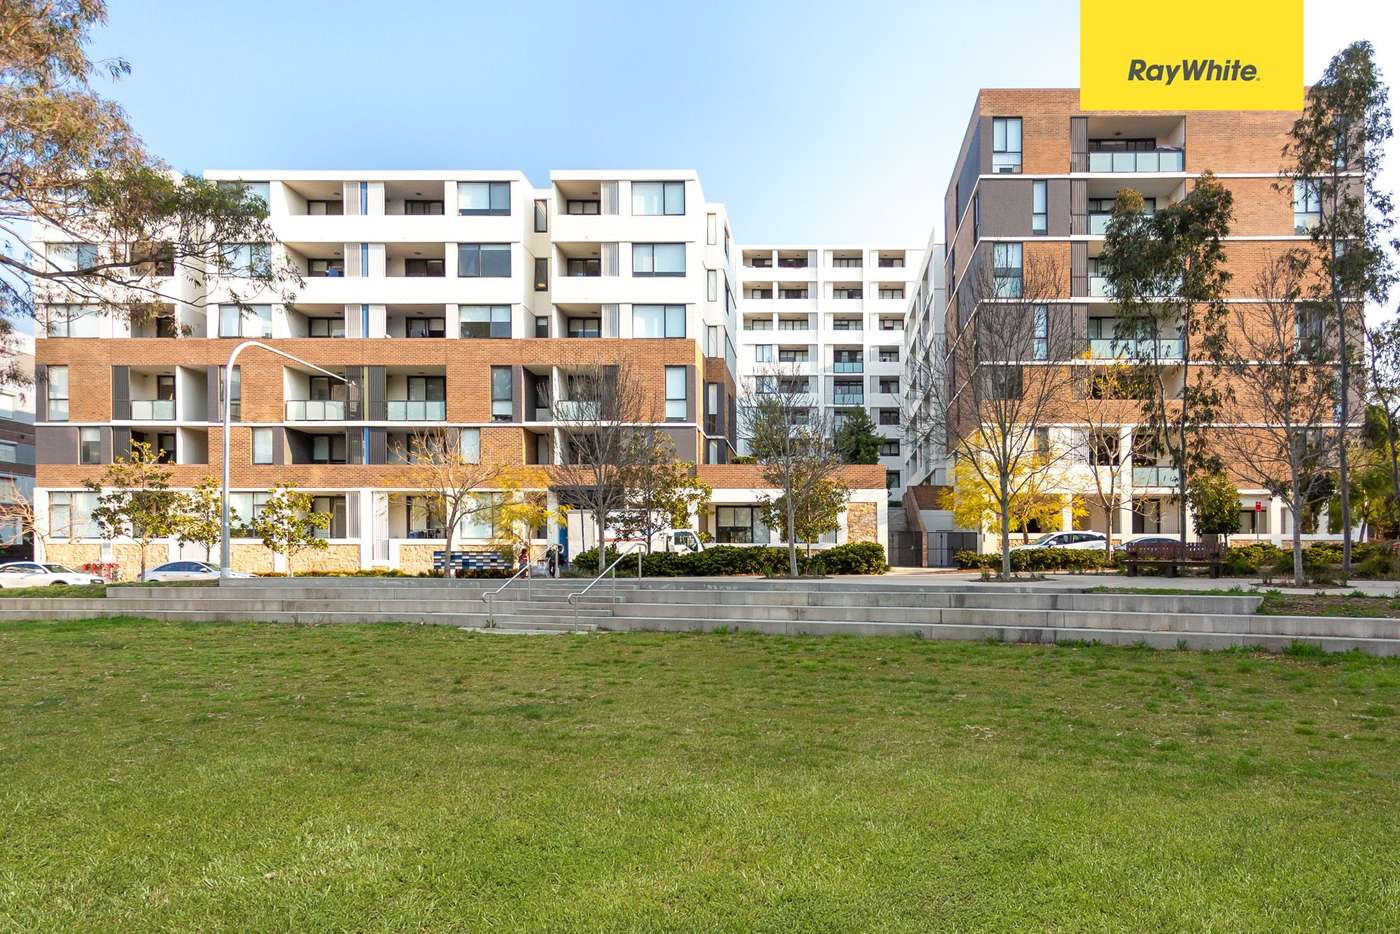 Main view of Homely apartment listing, 227/7 Washington Avenue, Riverwood NSW 2210